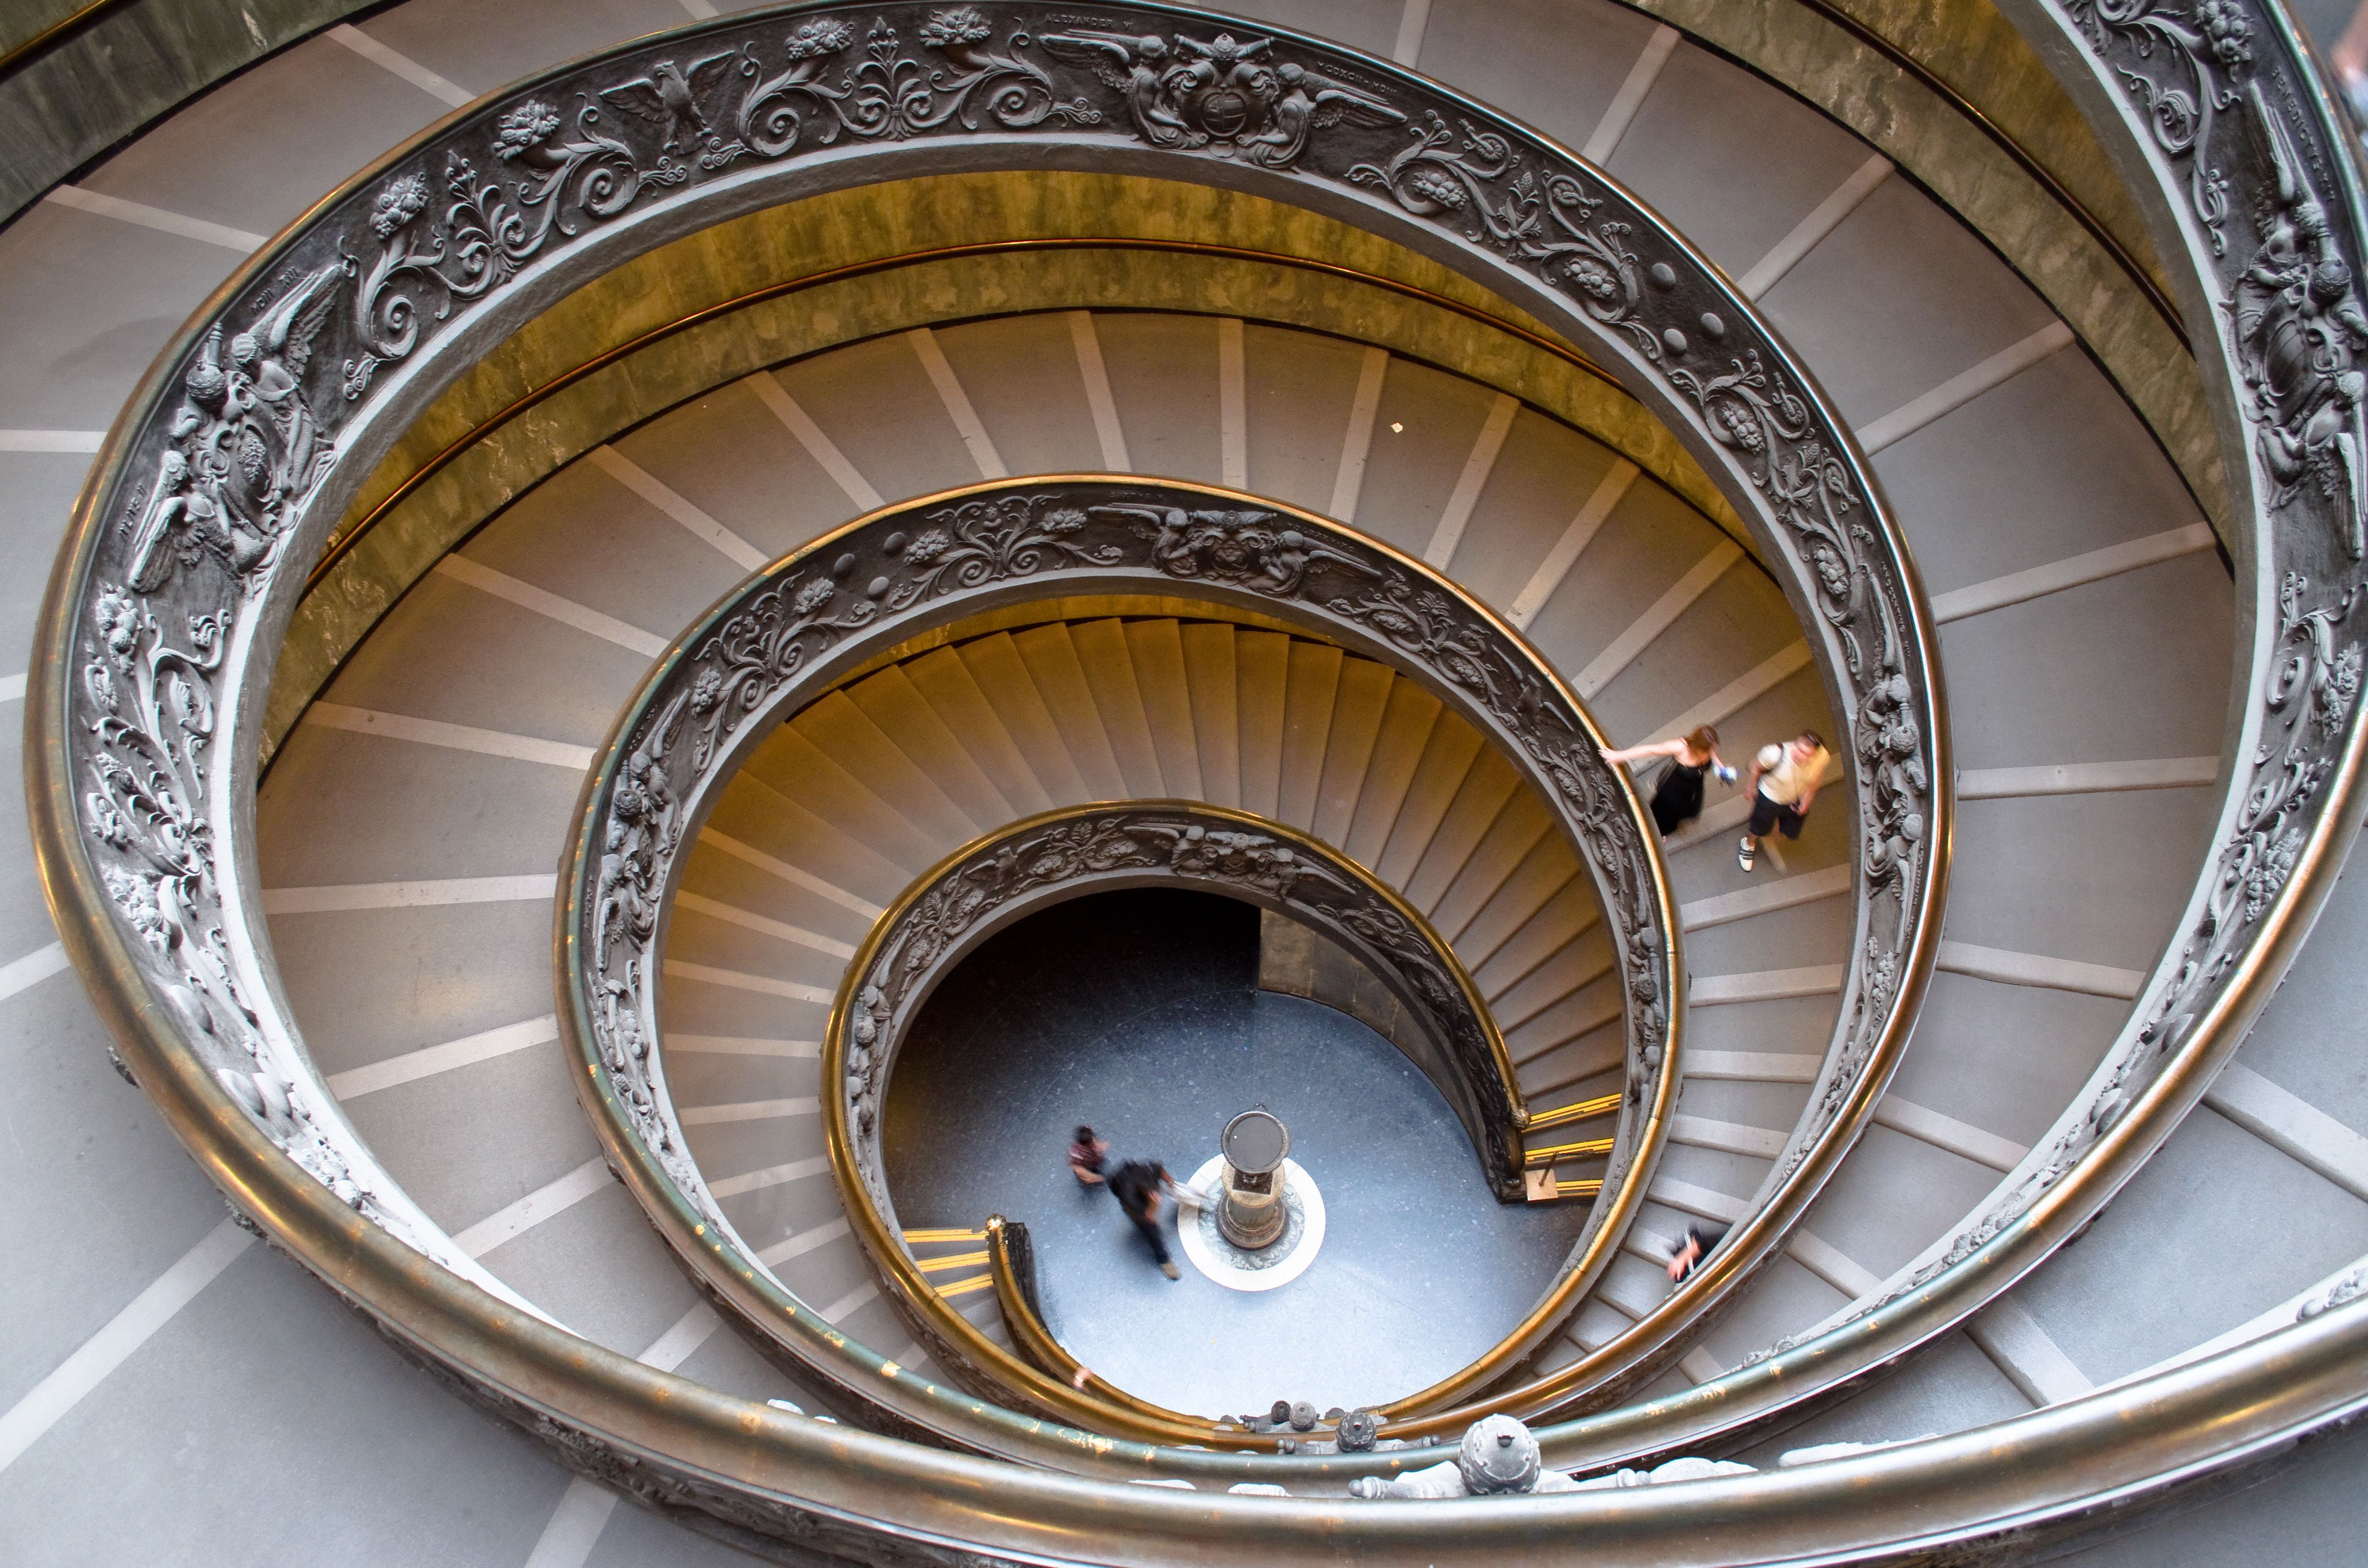 Double Spiral Staircase In The Vatican Museums Italy Spiral